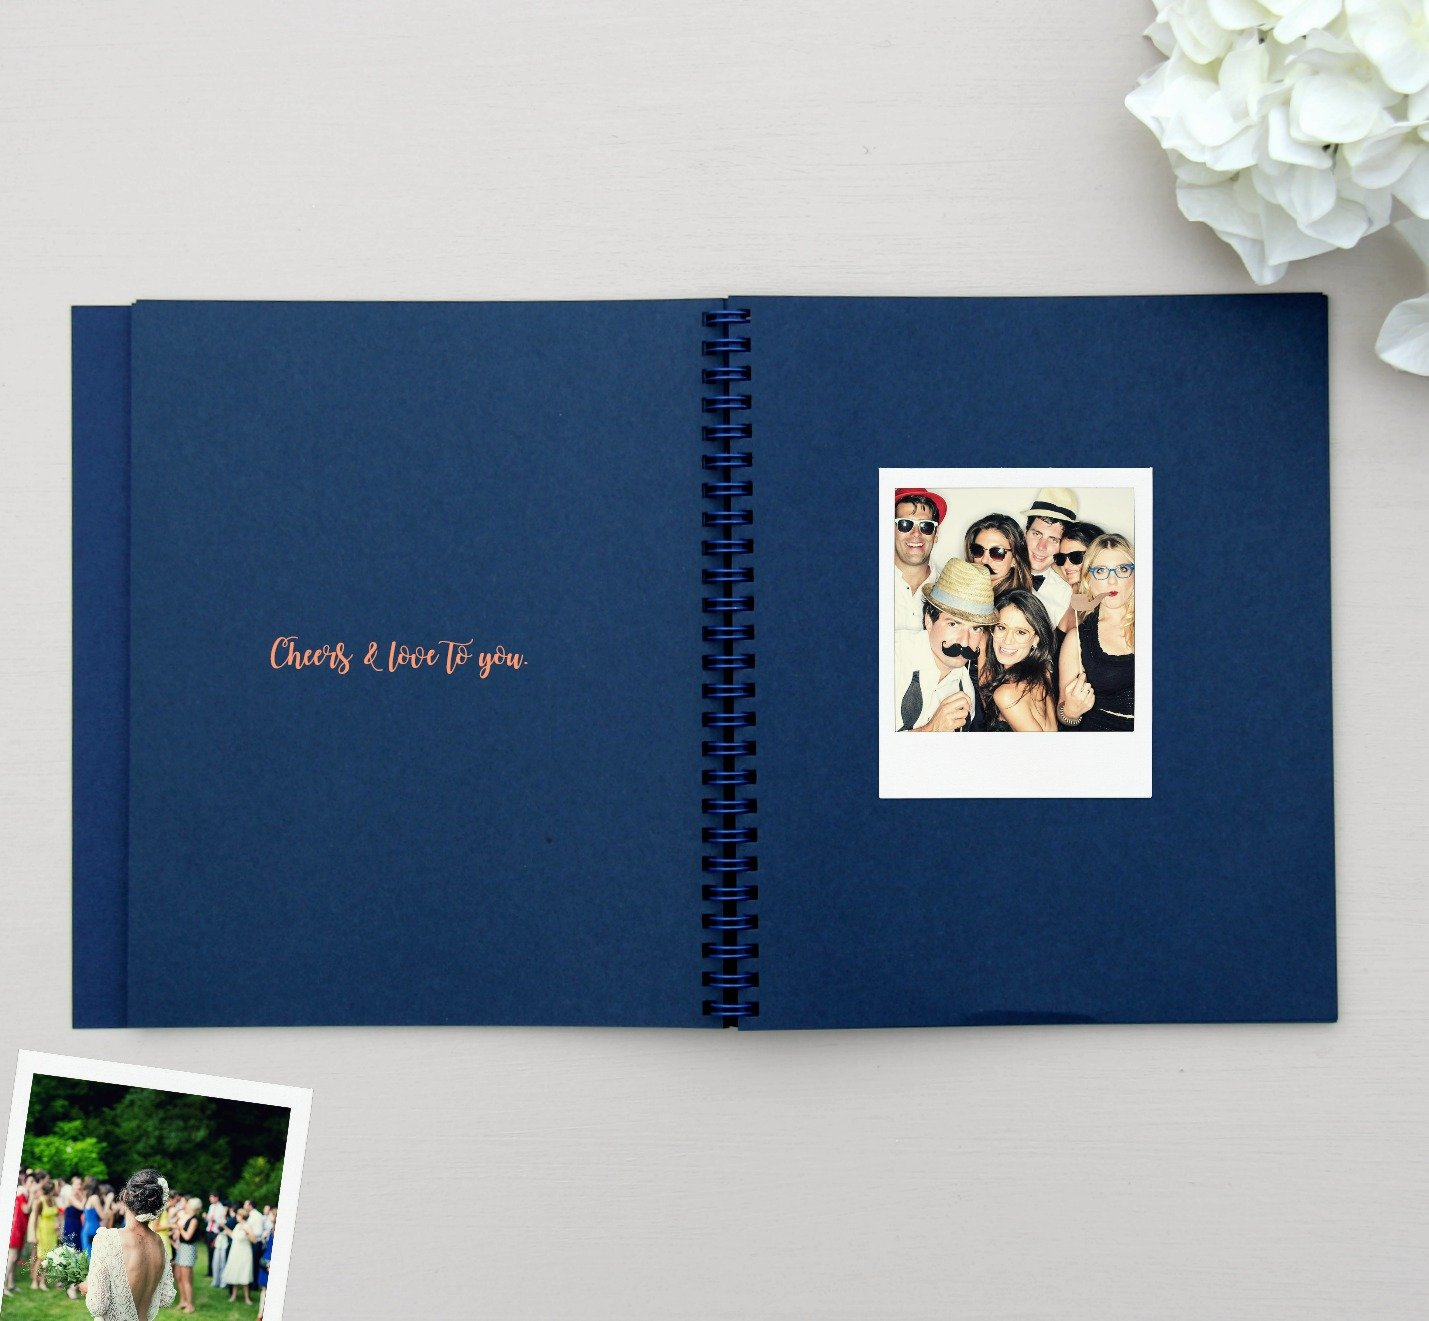 Polaroid Wedding Guest Book.Wedding Guest Book Polaroid Guest Book 8 5x7 Flat Lay Navy Rose Gold Wedding Guestbook Bridal Shower Guest Book Alternative Instax Guestbook